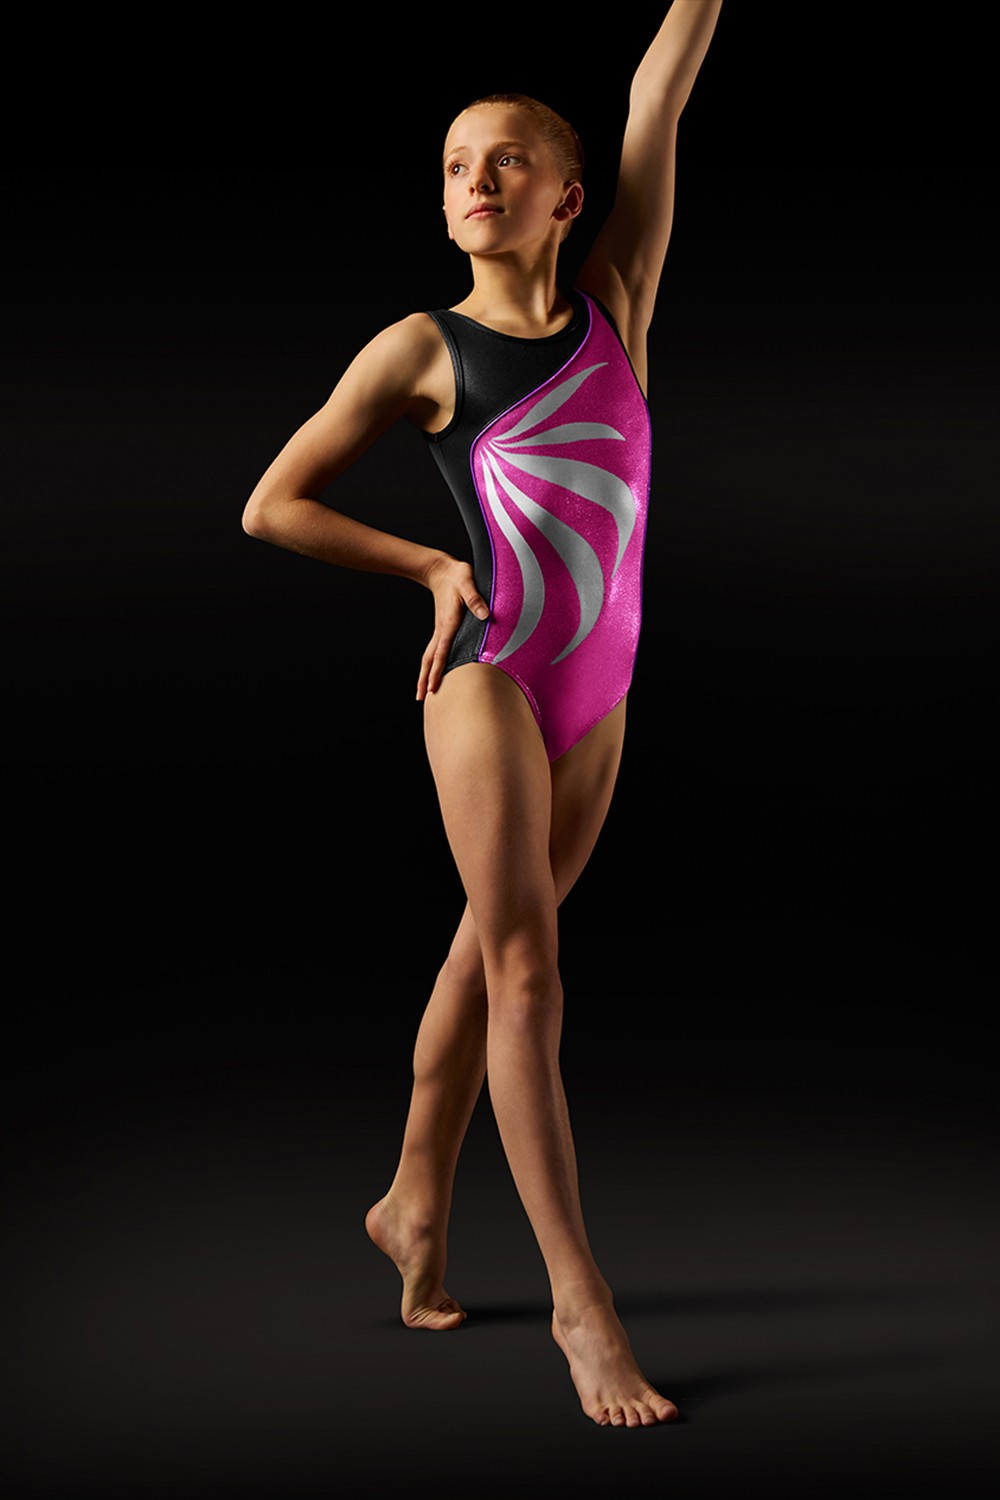 Body Con Spalline Larghe E Motivo A Fiamma Women's Gymnastics Leotards